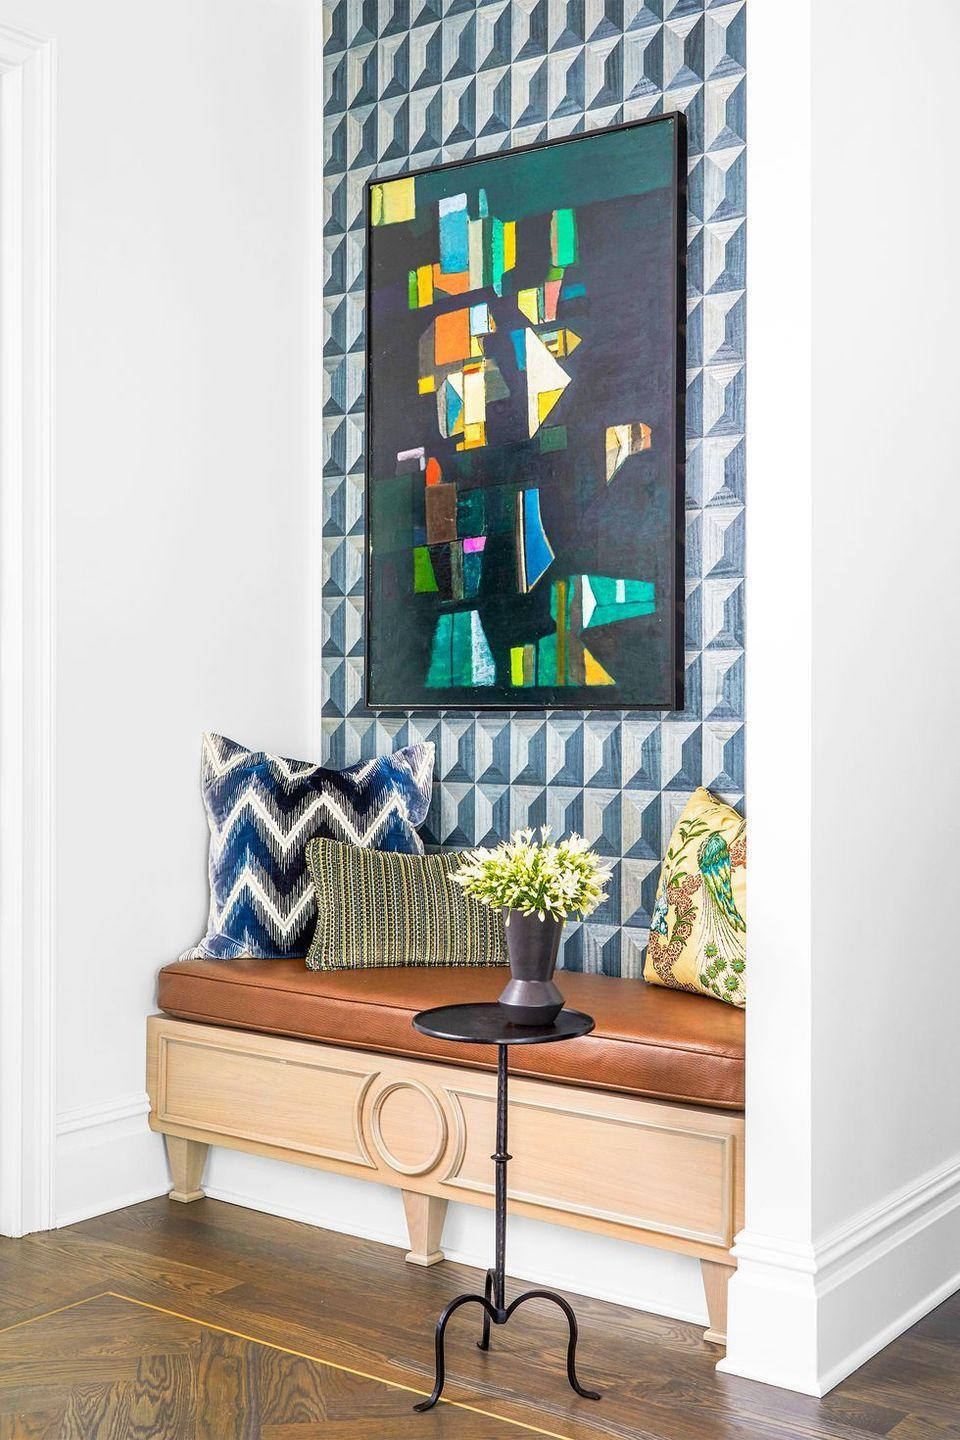 """<p>Designed by <a href=""""https://coreydamenjenkins.com/"""" rel=""""nofollow noopener"""" target=""""_blank"""" data-ylk=""""slk:Corey Jenkins"""" class=""""link rapid-noclick-resp"""">Corey Jenkins</a>, this little nook is another great example of a small but impactful banquette that can play a few different roles, from breakfast perch to shoe-lacing spot, reading nook and beyond.</p>"""